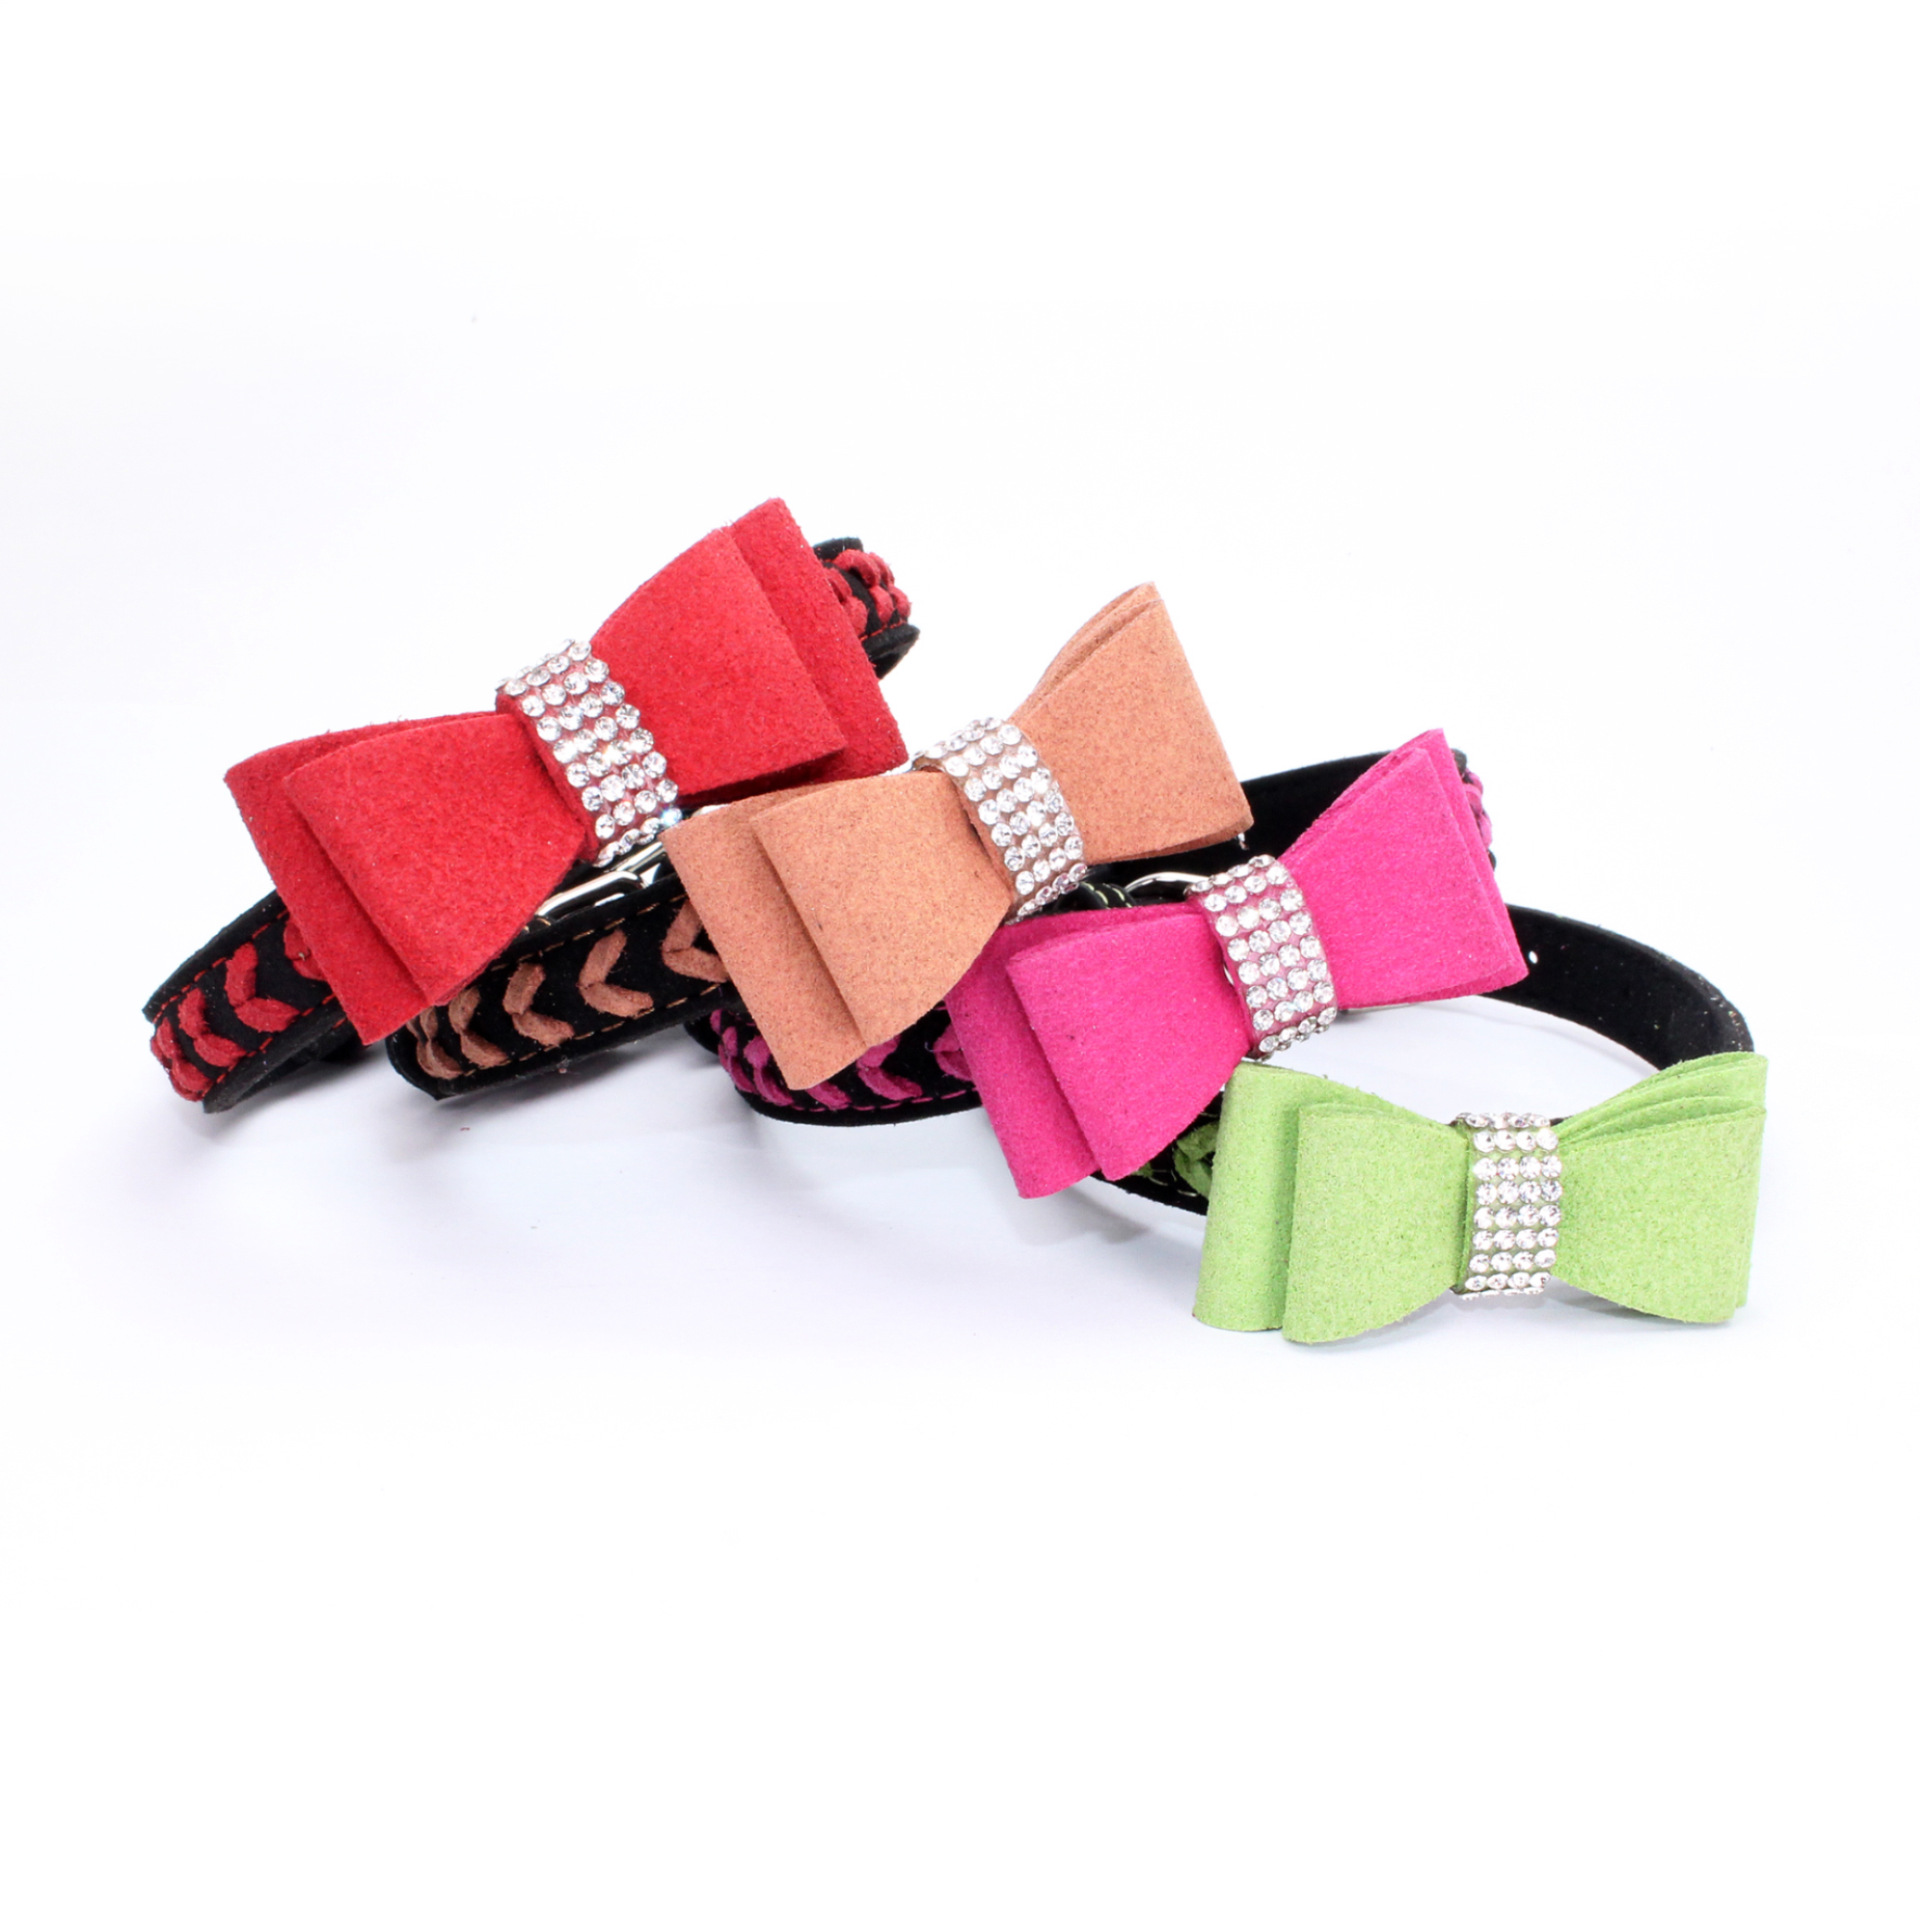 Soft Supper Fiber Cat Dog Collars Pink For Small Medium Dogs Chihuahua Yorkie 9 Colors Size XS S M L 20E